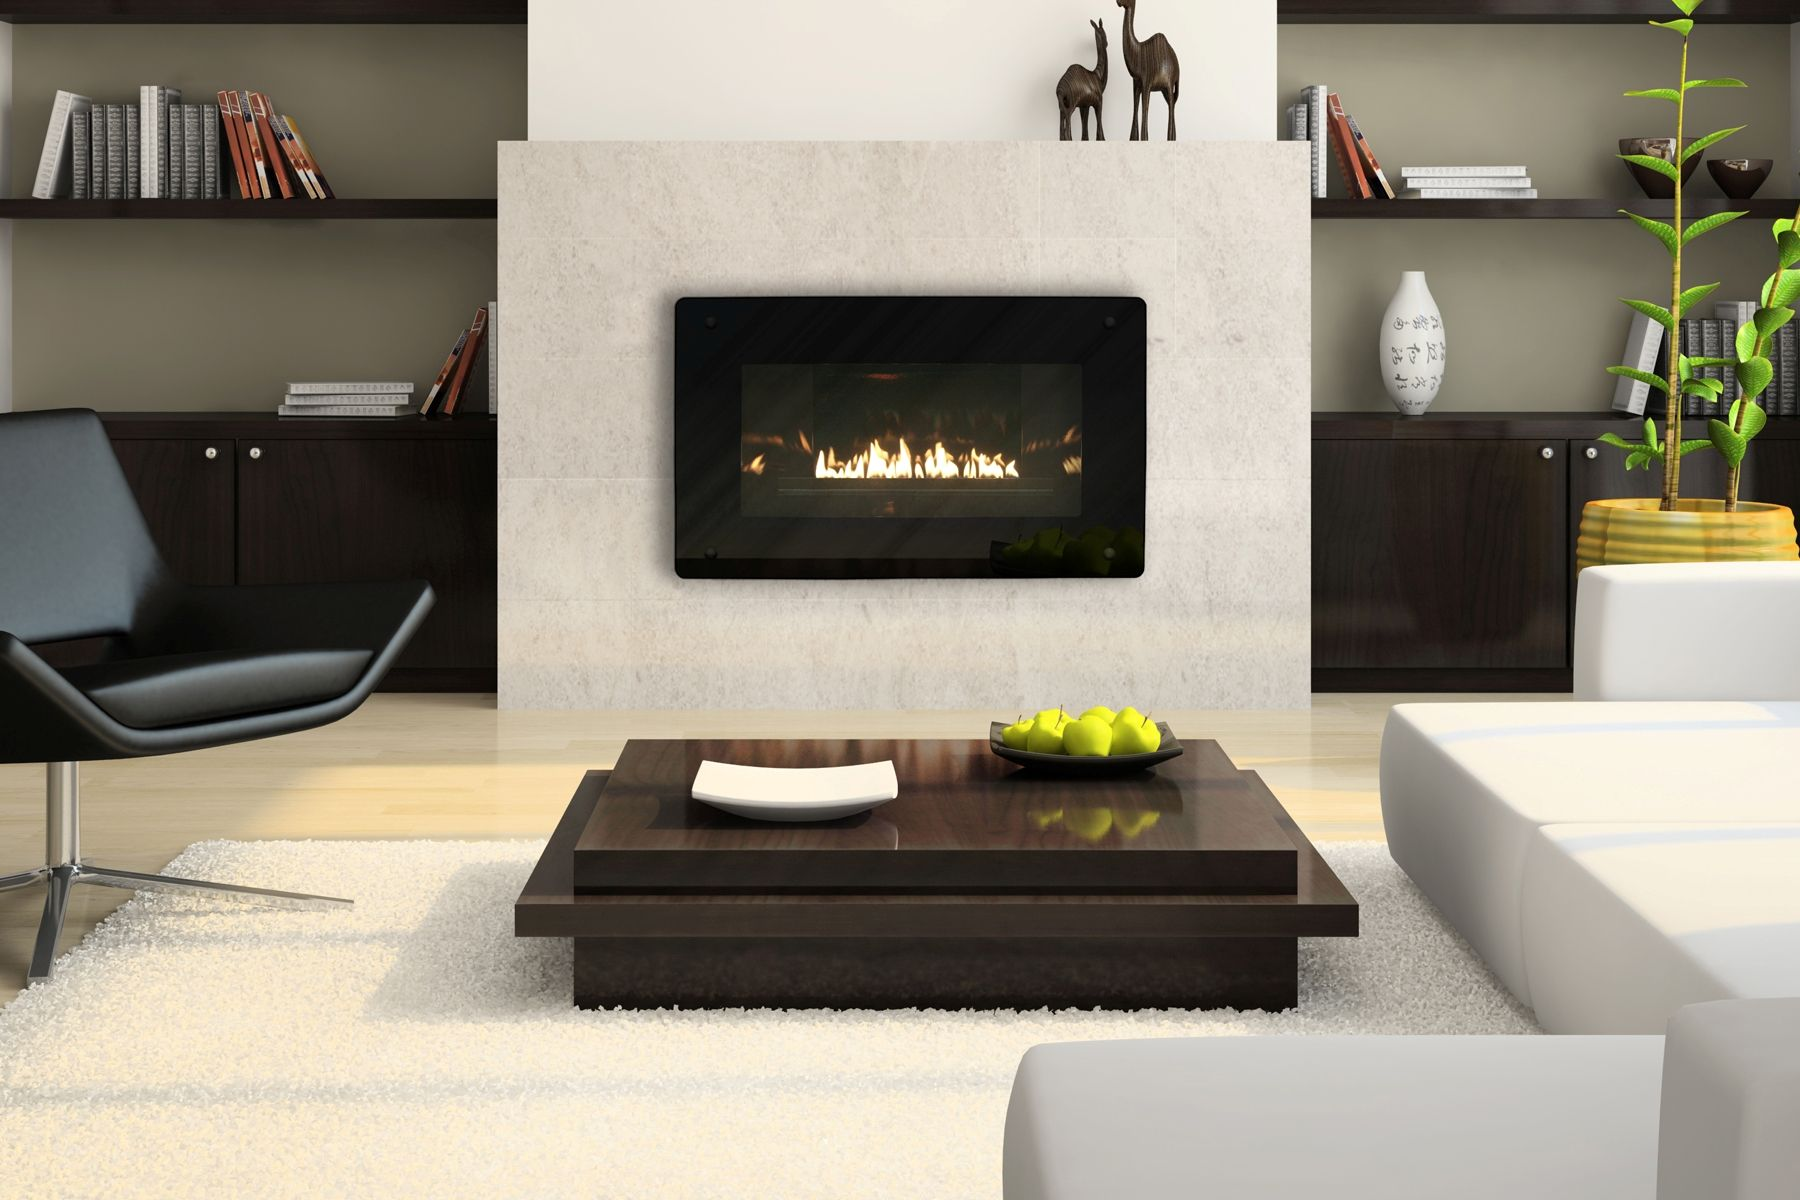 Charmant 20+ Modern Gas Fireplace Design : Decorations Beautiful Rectangle  Contemporary Ventless Gas Fireplace Idea With